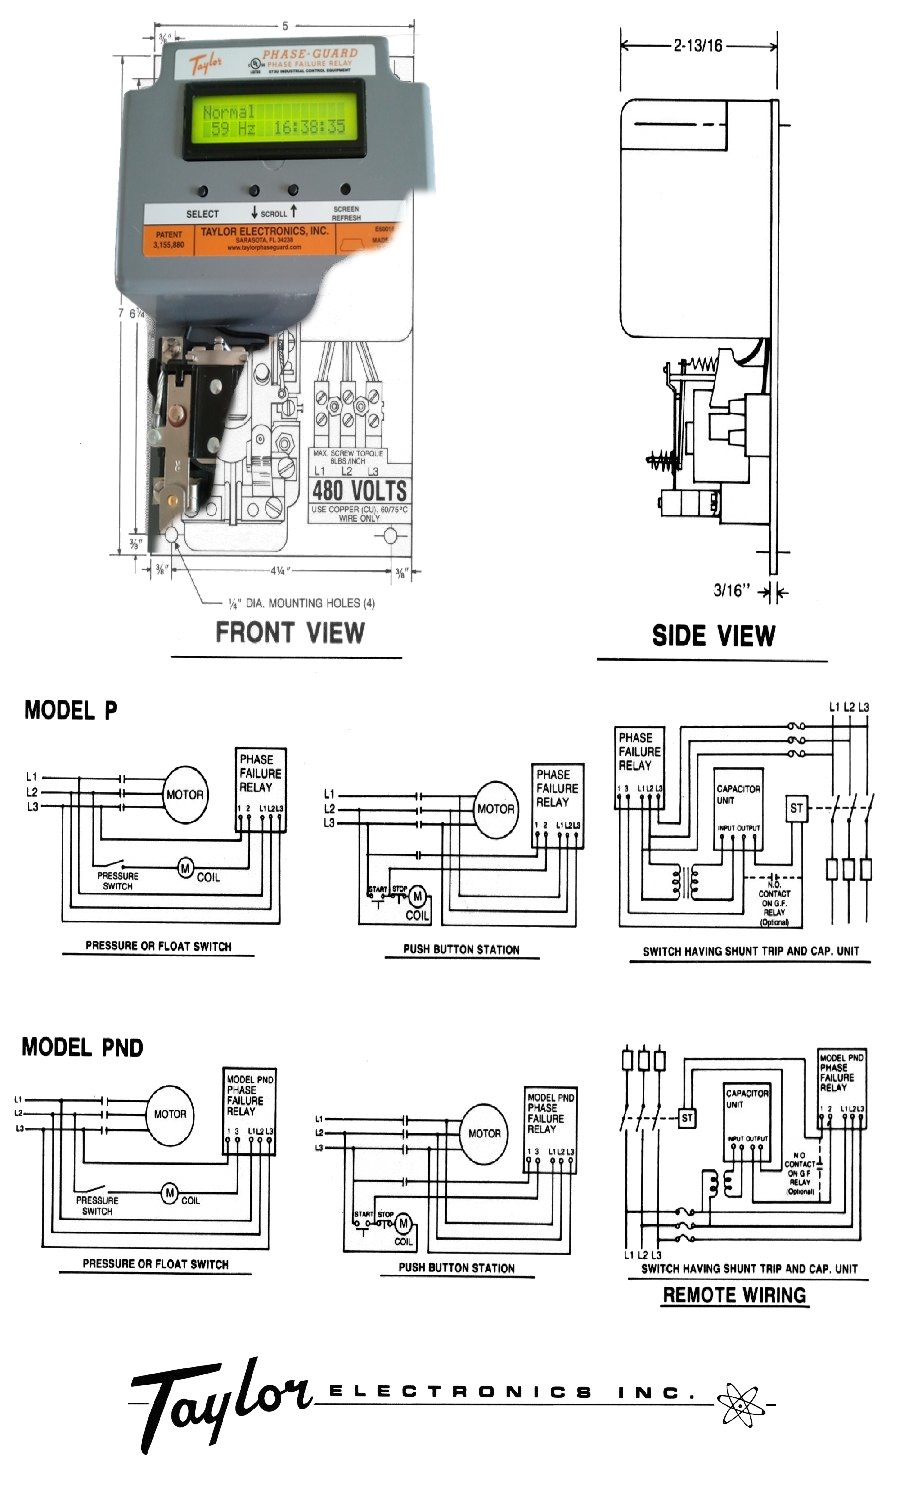 small resolution of taylor forklift wiring diagrams auto electrical wiring diagram tomberlin emerge wiring diagram taylor forklift wiring